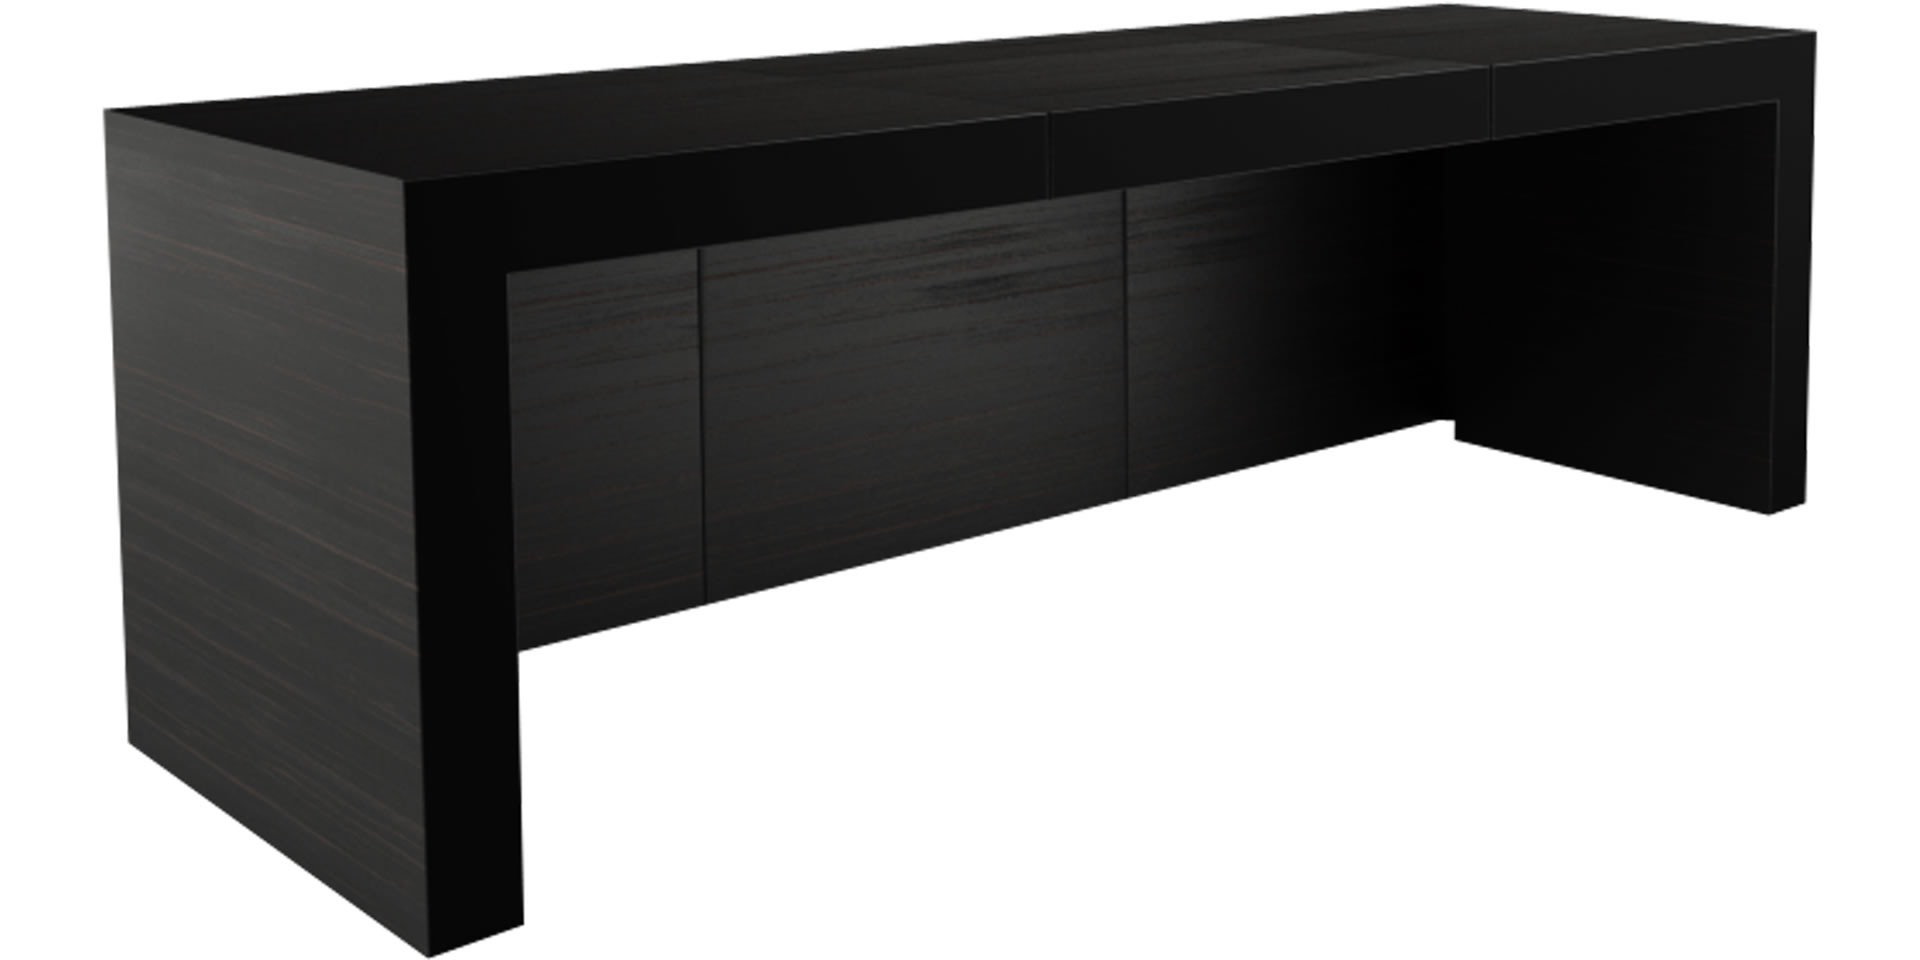 eck schreibtisch opararius puristischer design. Black Bedroom Furniture Sets. Home Design Ideas